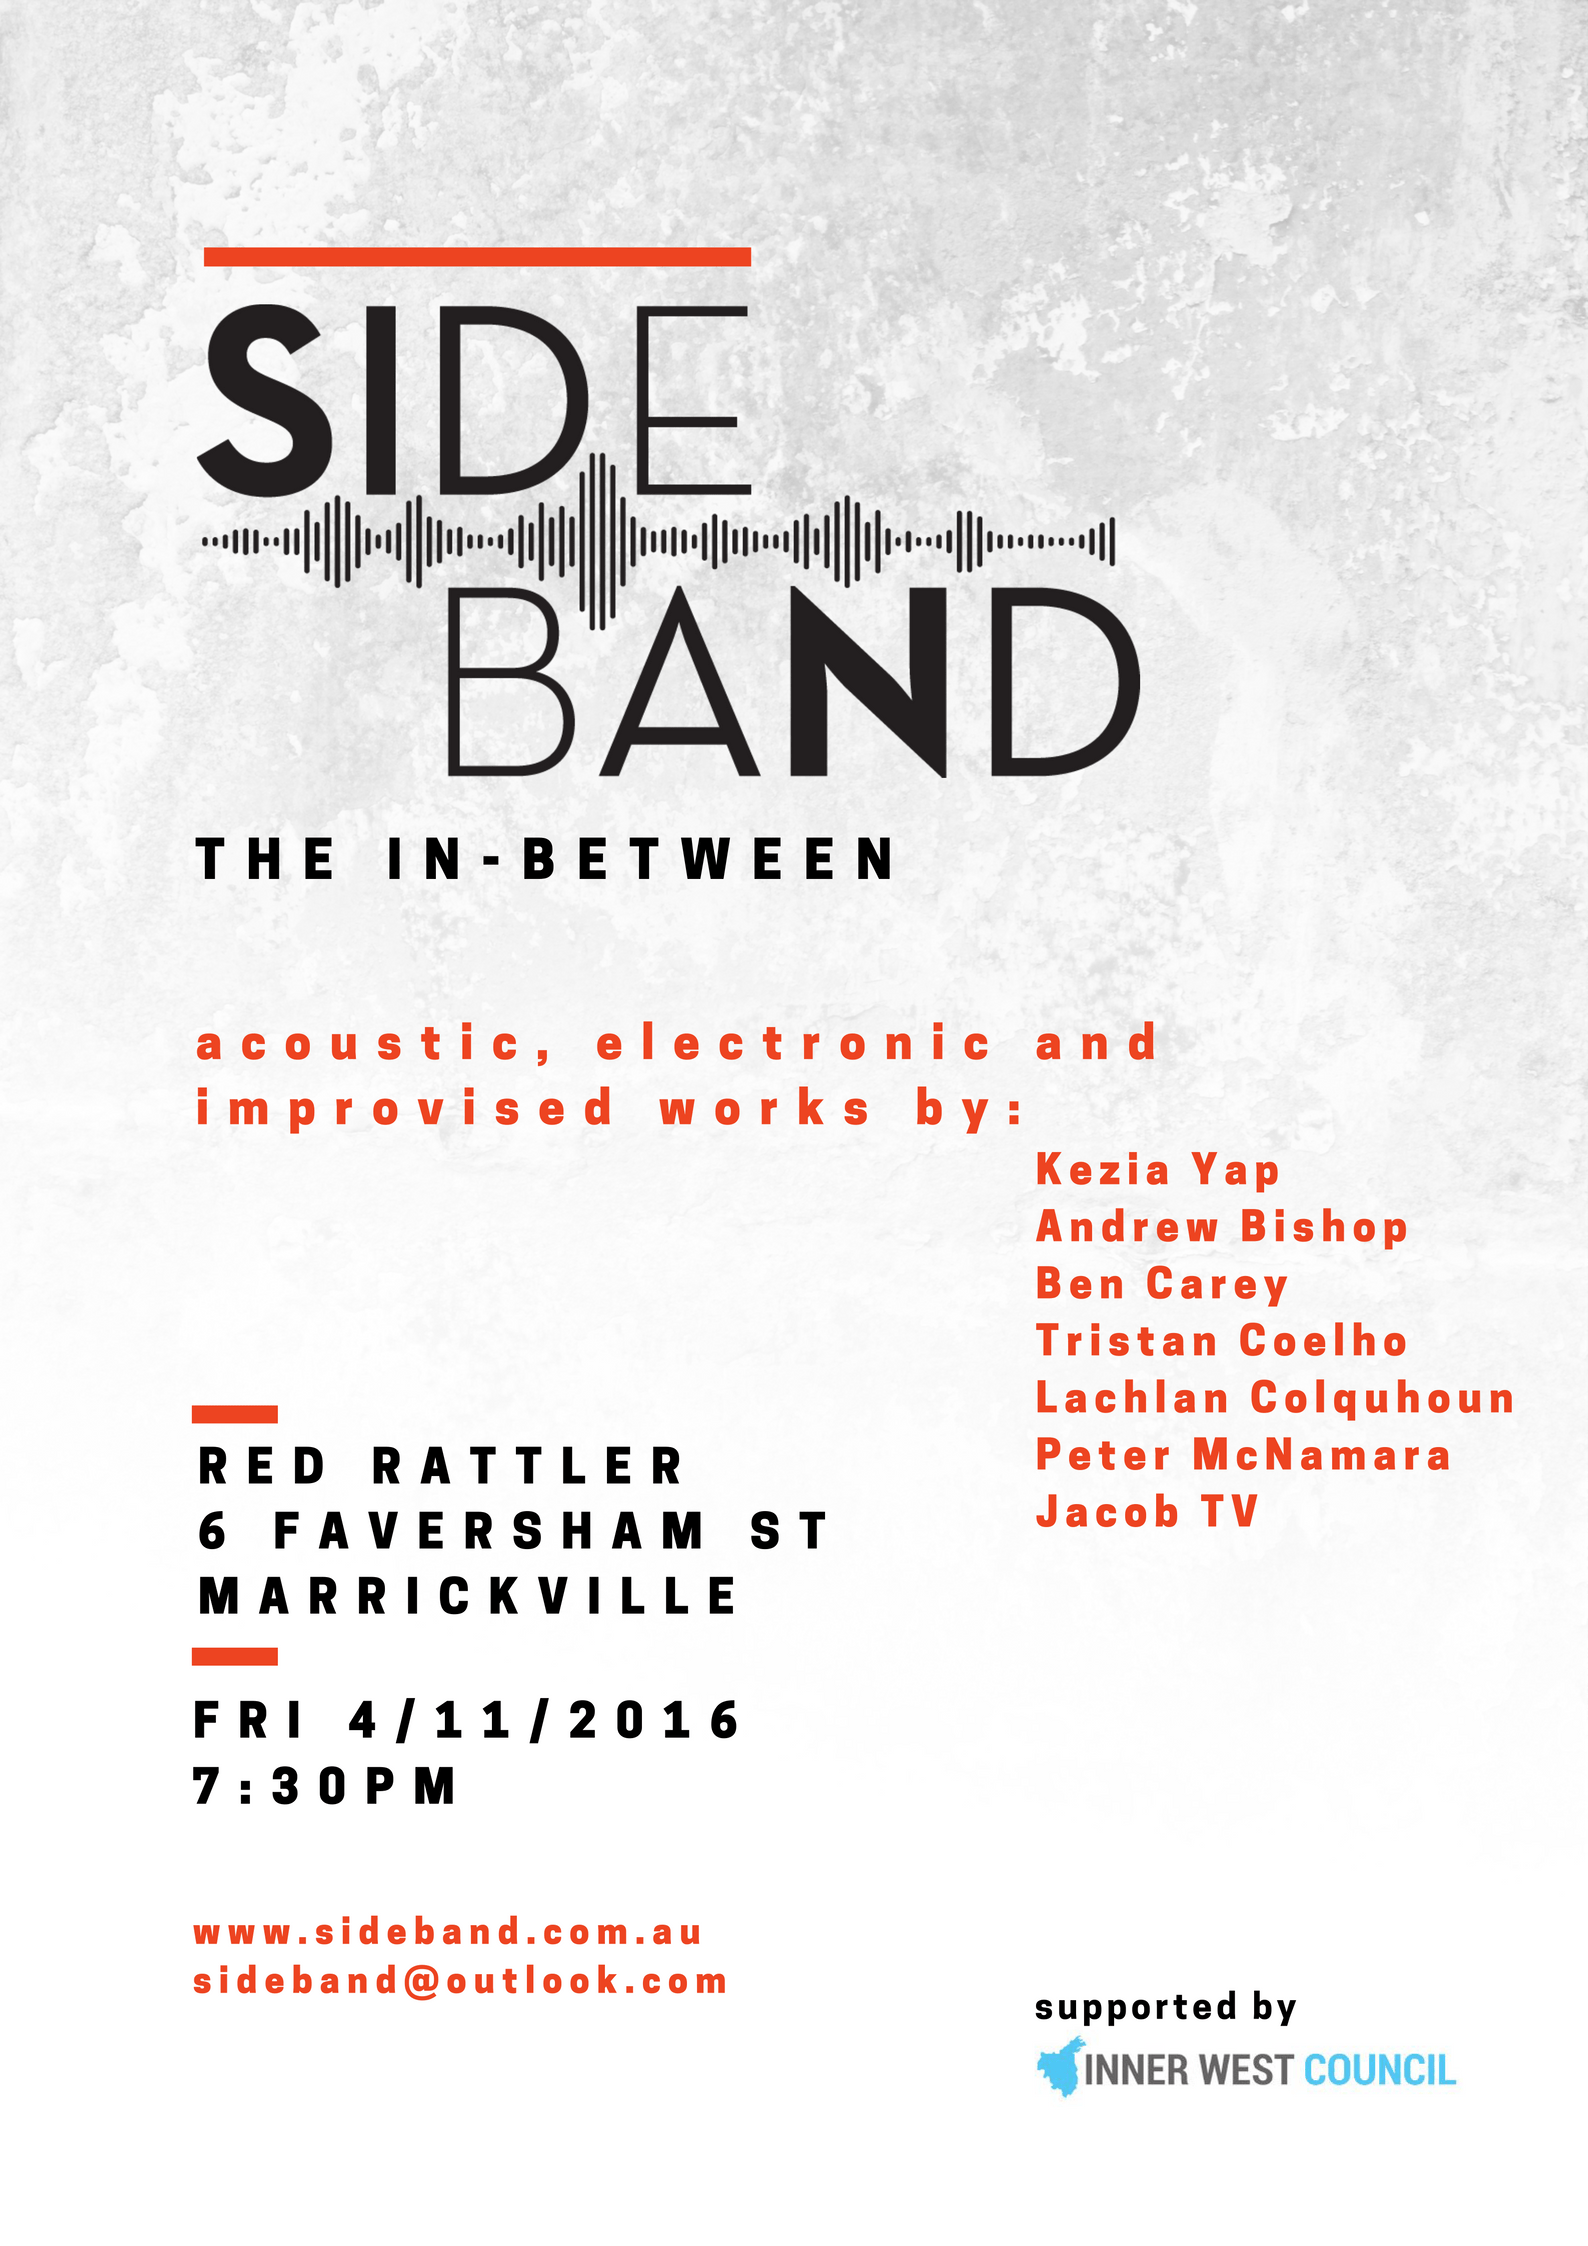 Sideband- the inbetween